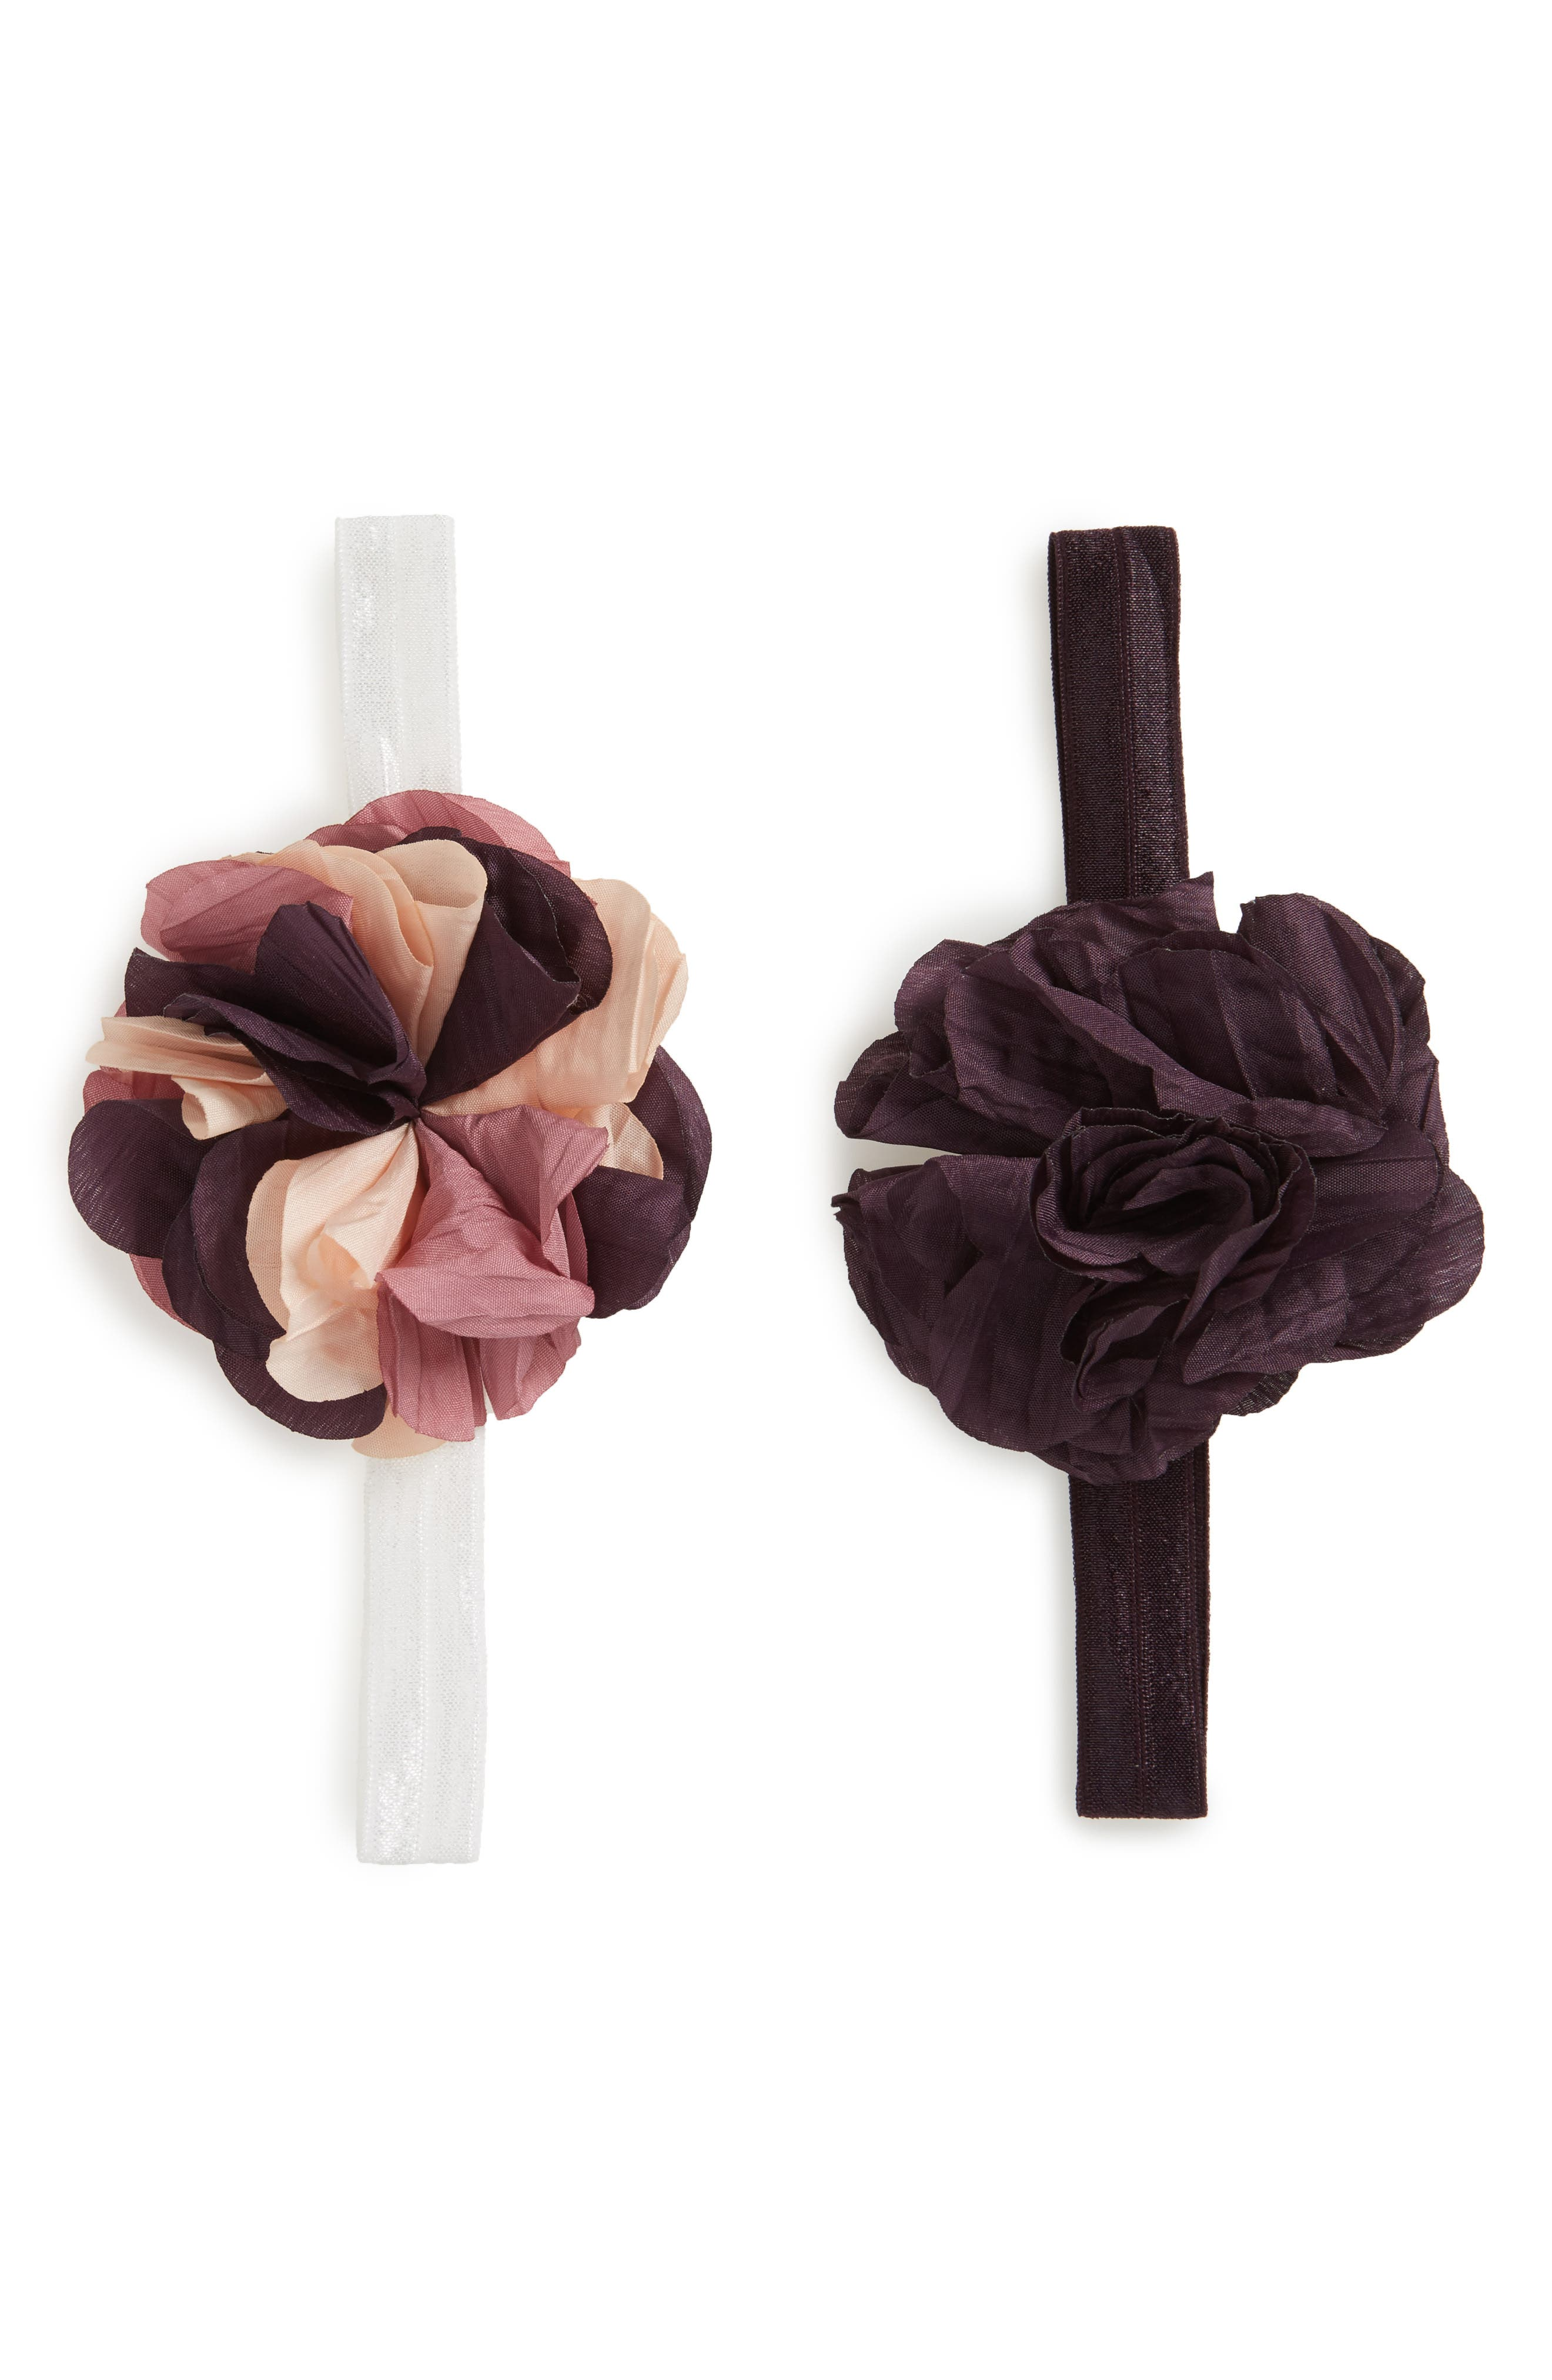 Alternate Image 1 Selected - PLH Bows & Laces Crinkle Flower 2-Pack Headbands (Baby Girls)